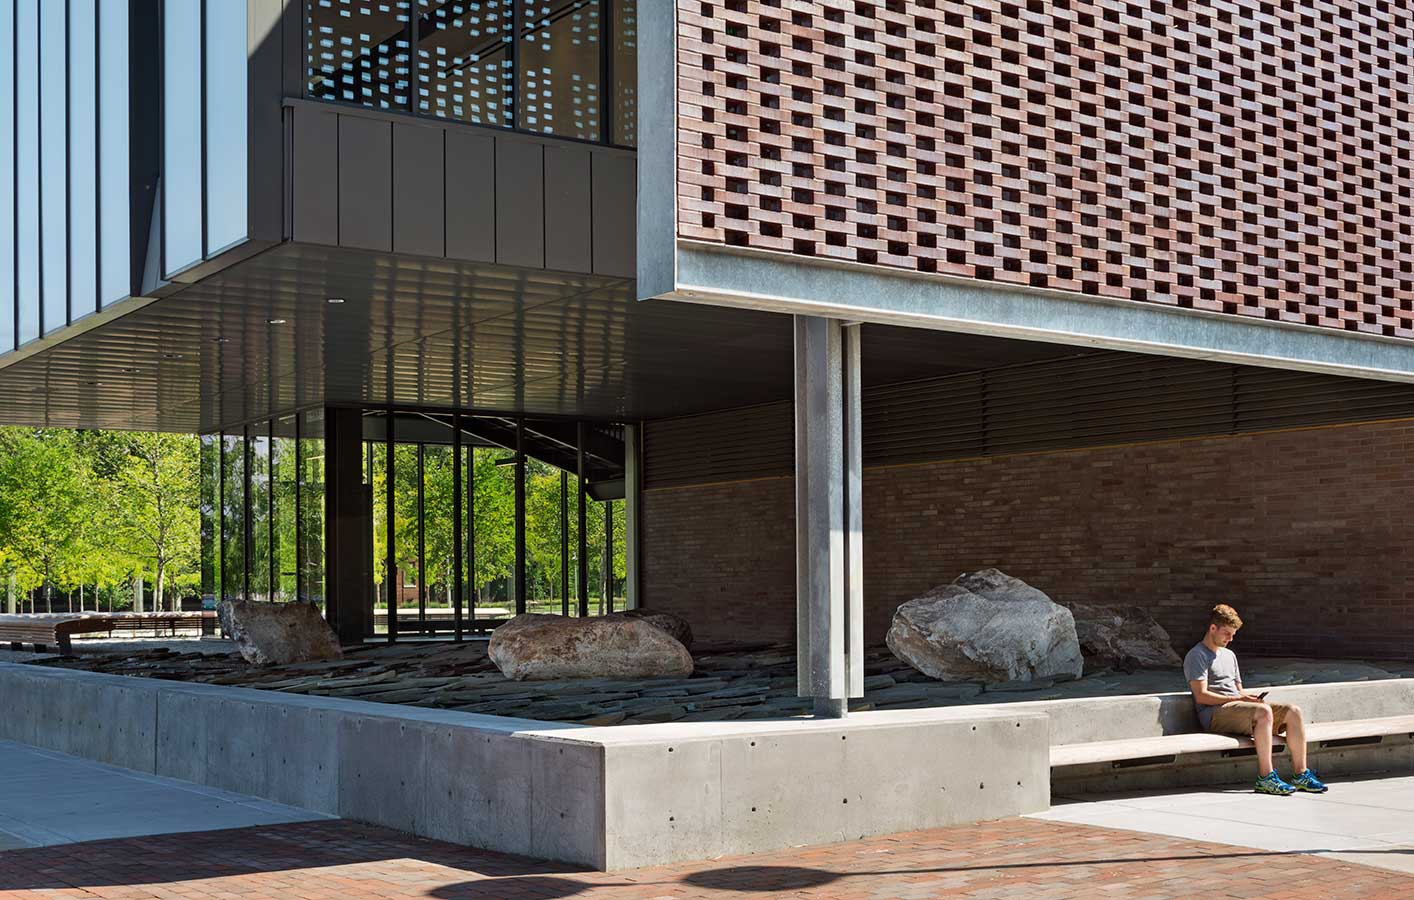 <p>The use of brick in the innovative solar shade honors the history of Philadelphia's Navy Yard and links the new facility to the existing buildings on the campus.  <br /><br><small>©Michael Moran/OTTO</small></p>